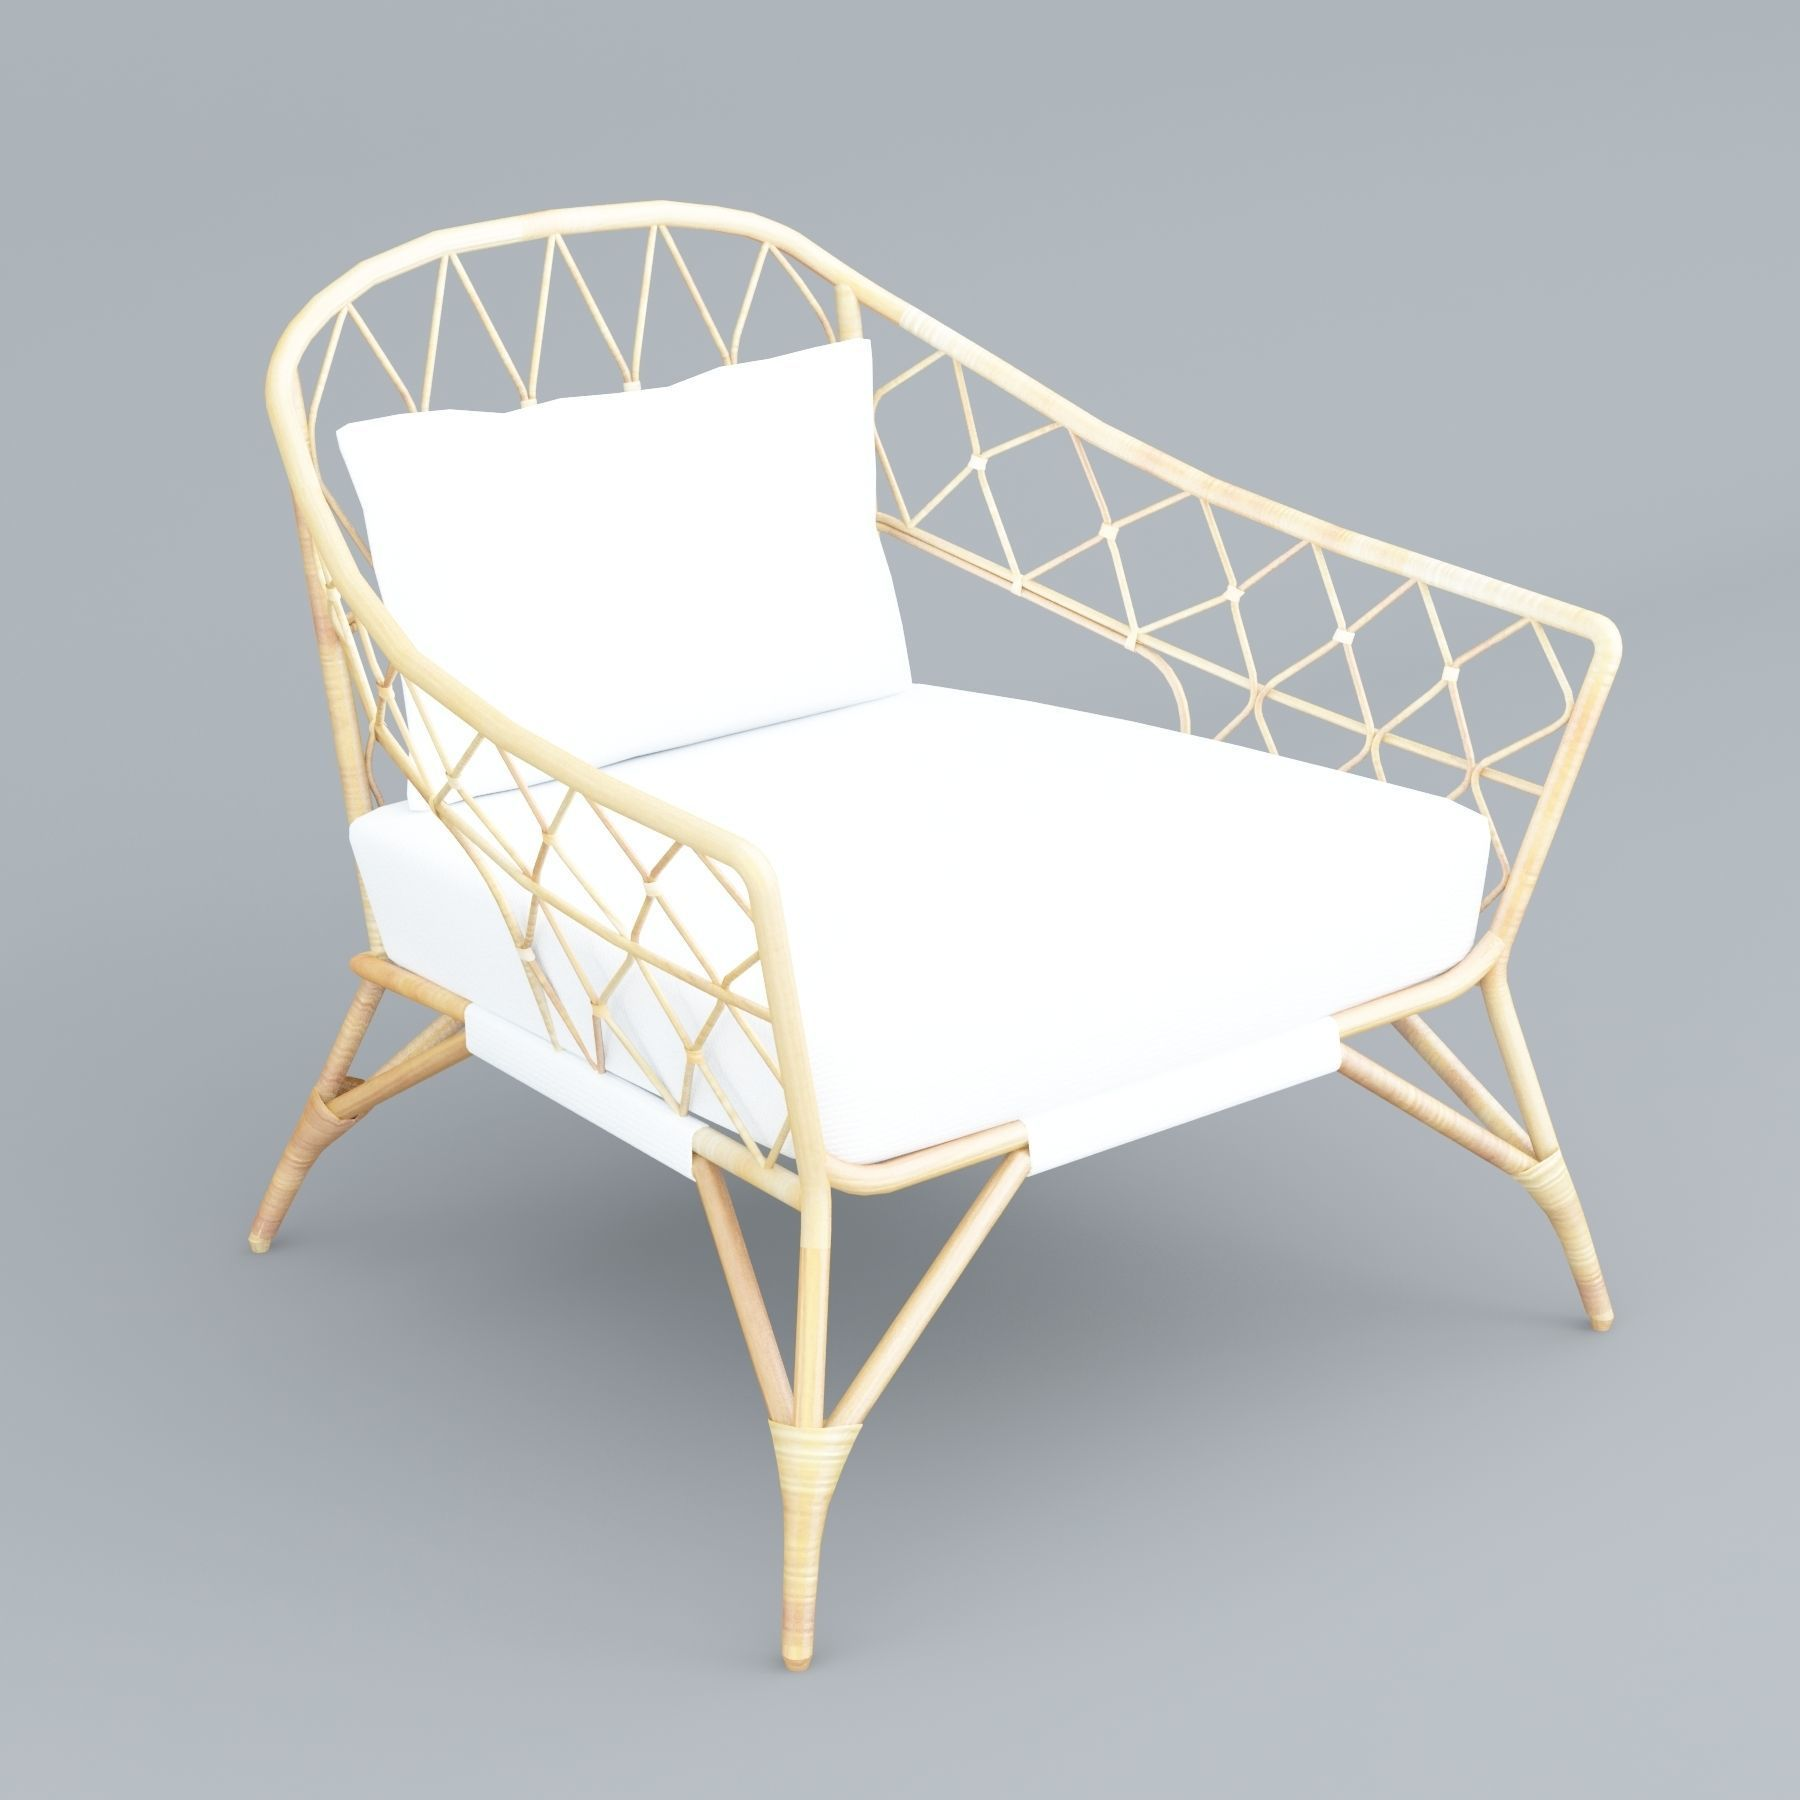 Rattan Ikea Stockholm Ikea Rattan Chair 3d Model